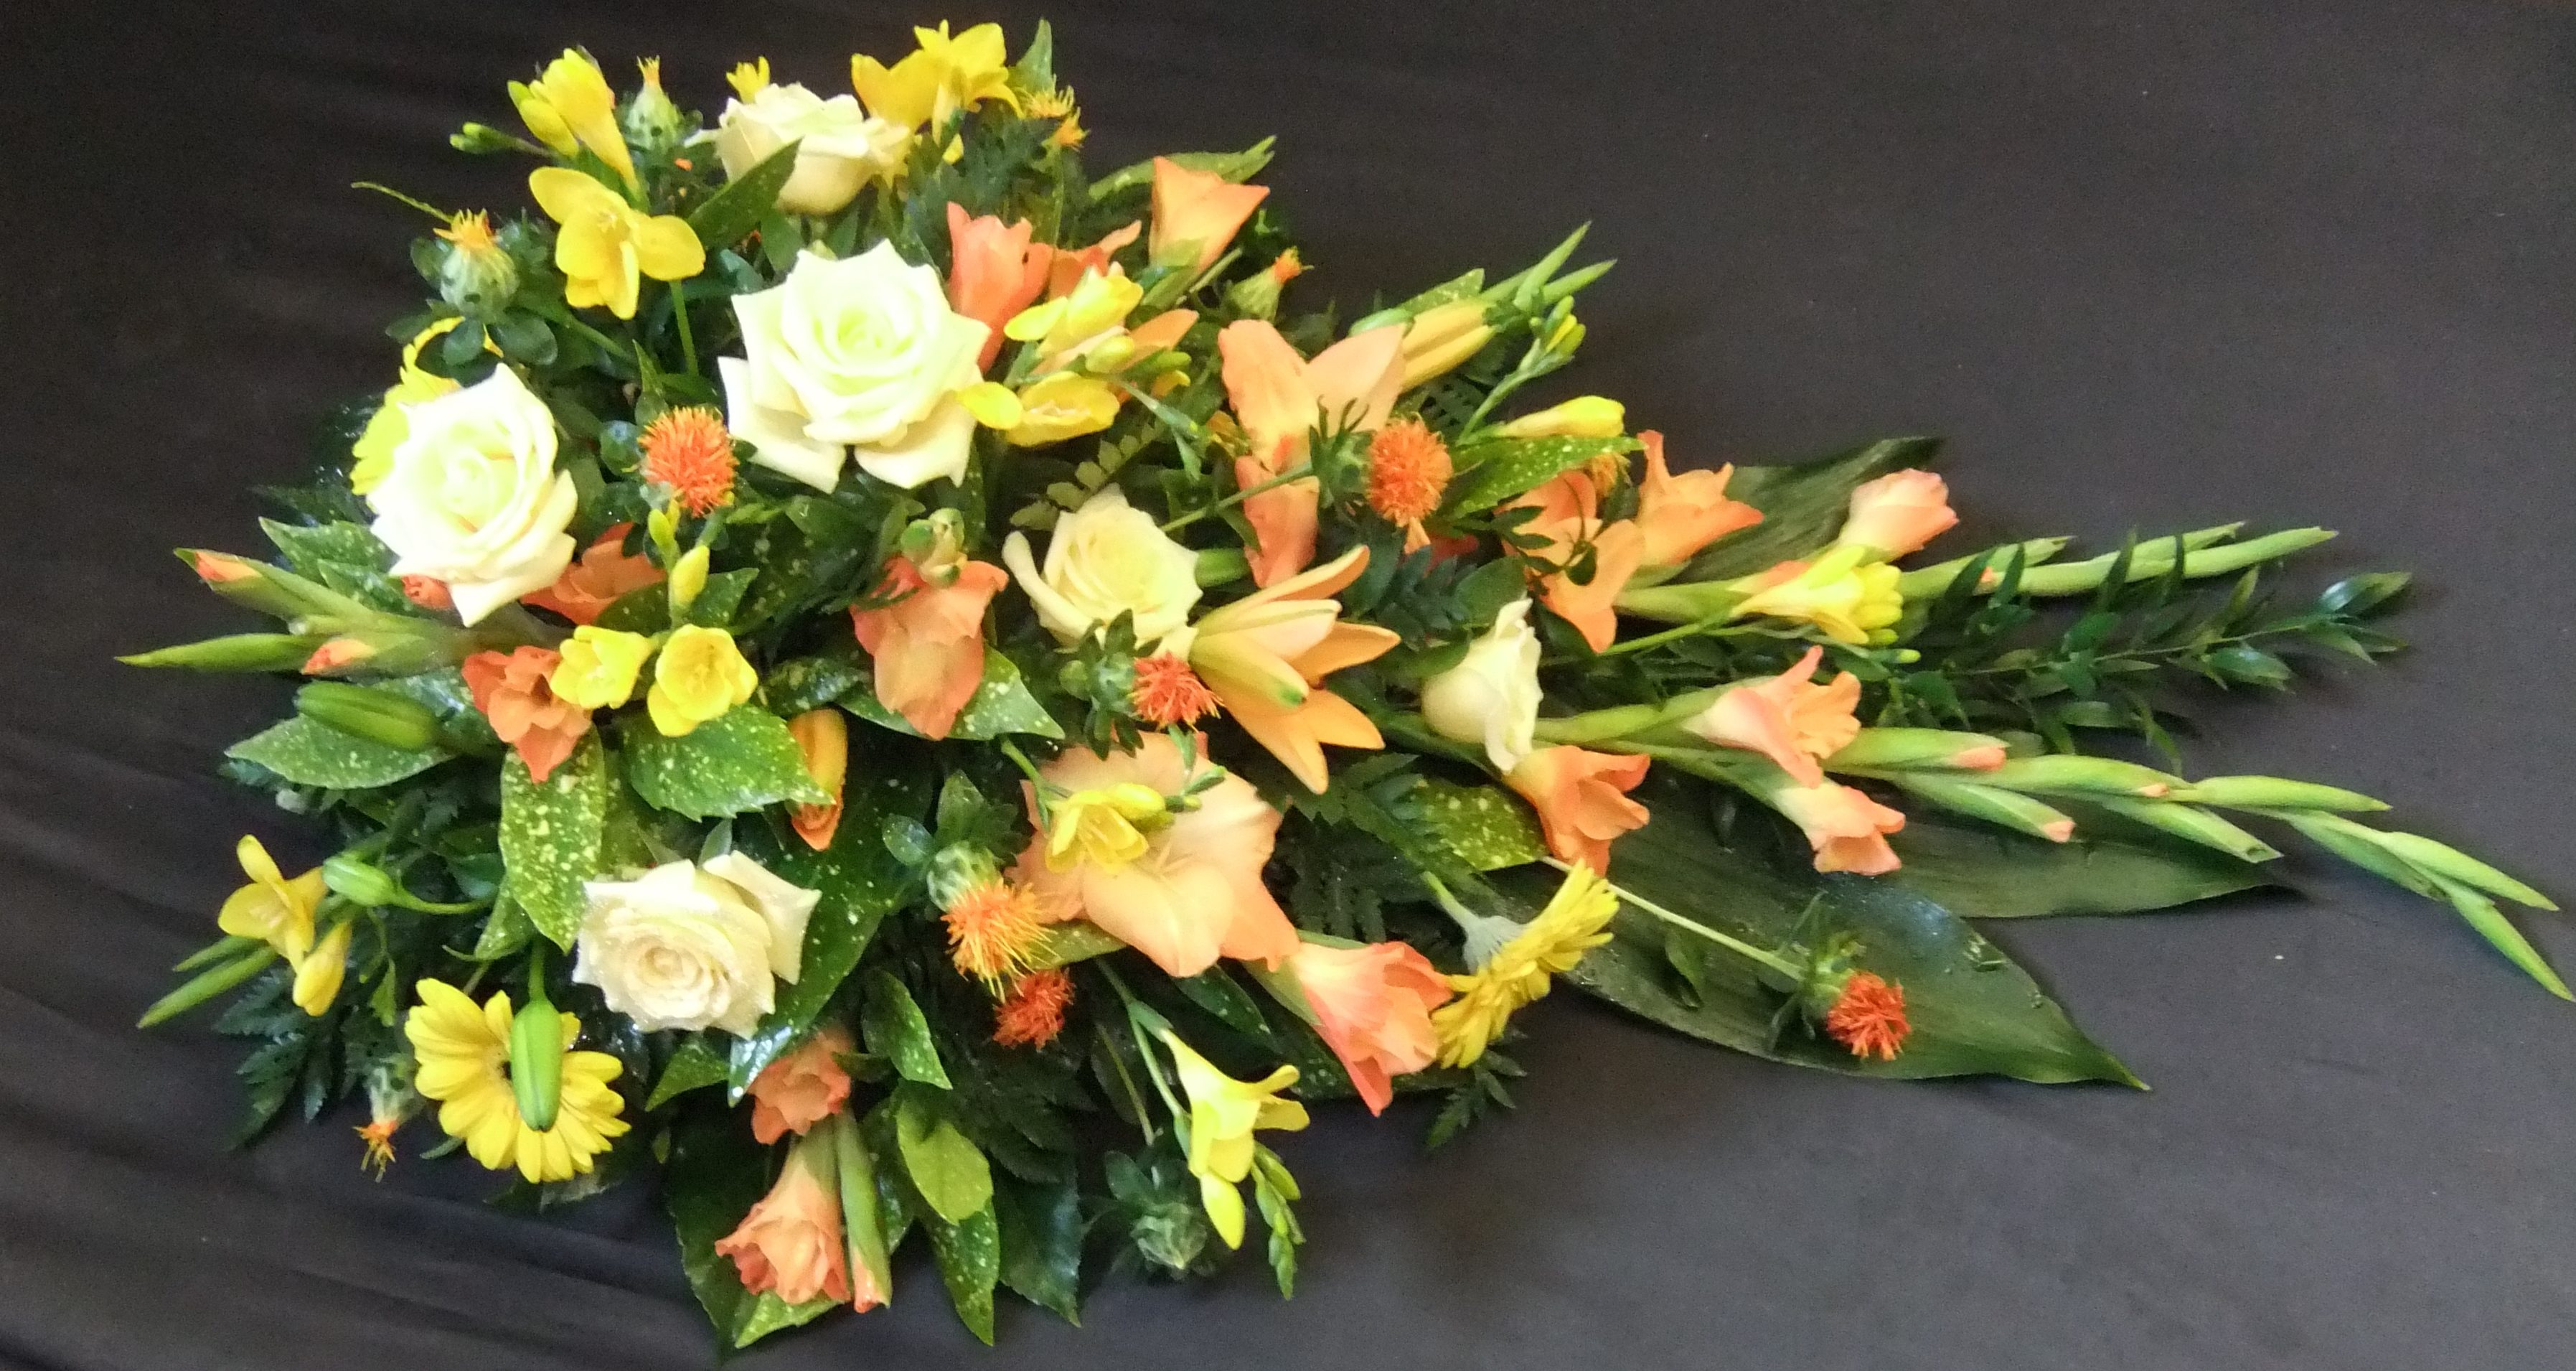 Funeral flower pictures john thomas florist single ended spray in orange yellow and cream izmirmasajfo